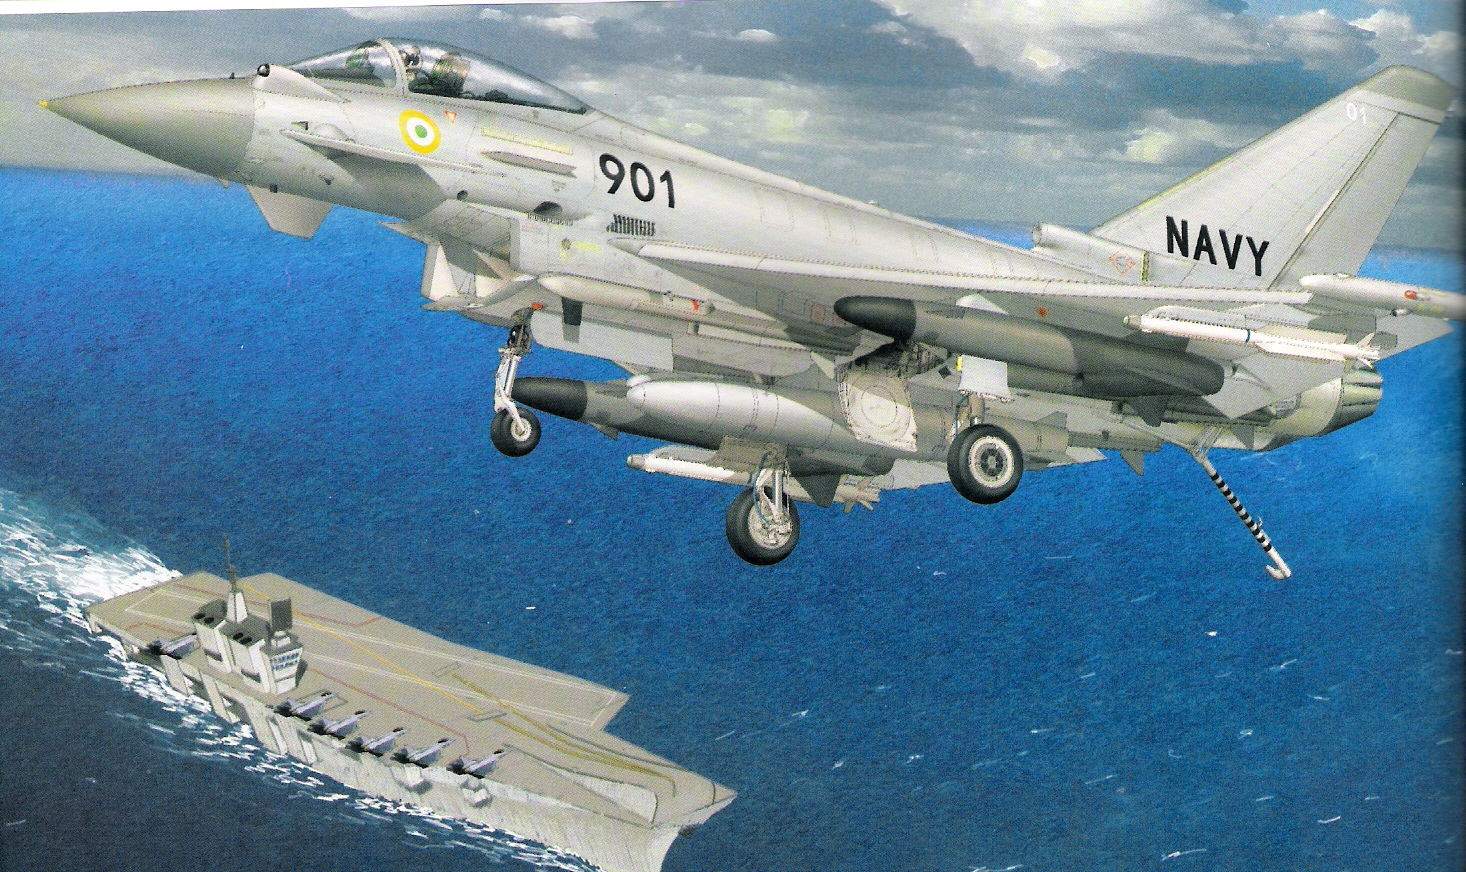 UK Armed Forces Commentary: Eurofighter Typhoon